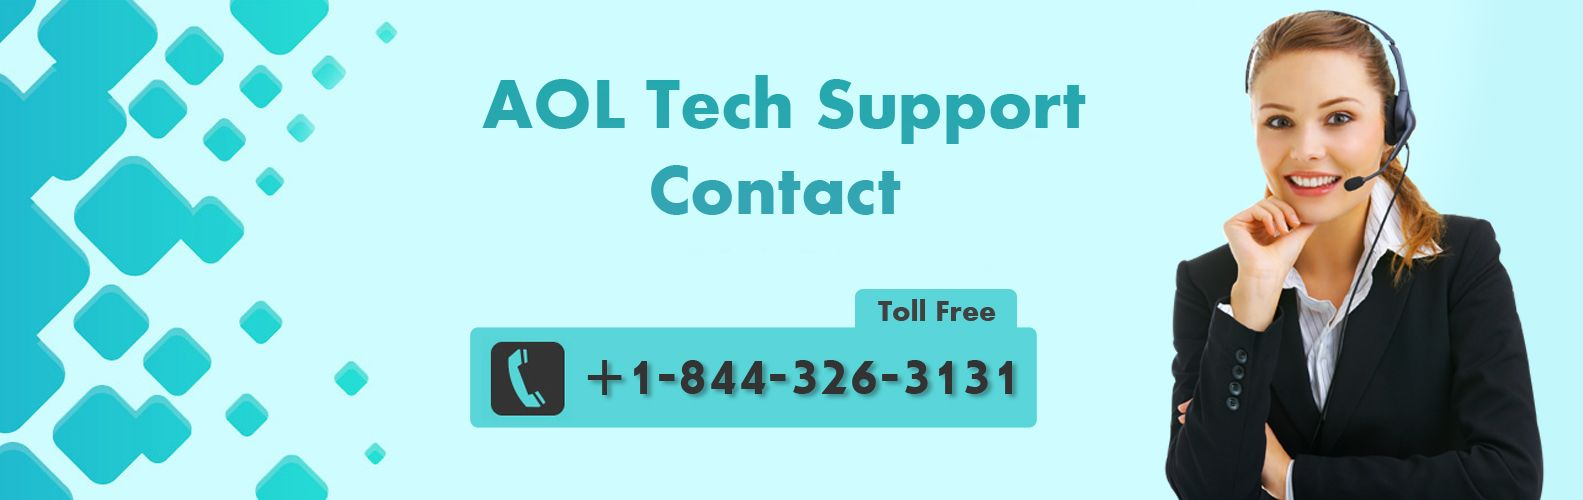 AOL customer care tollfree number 18443263131 is